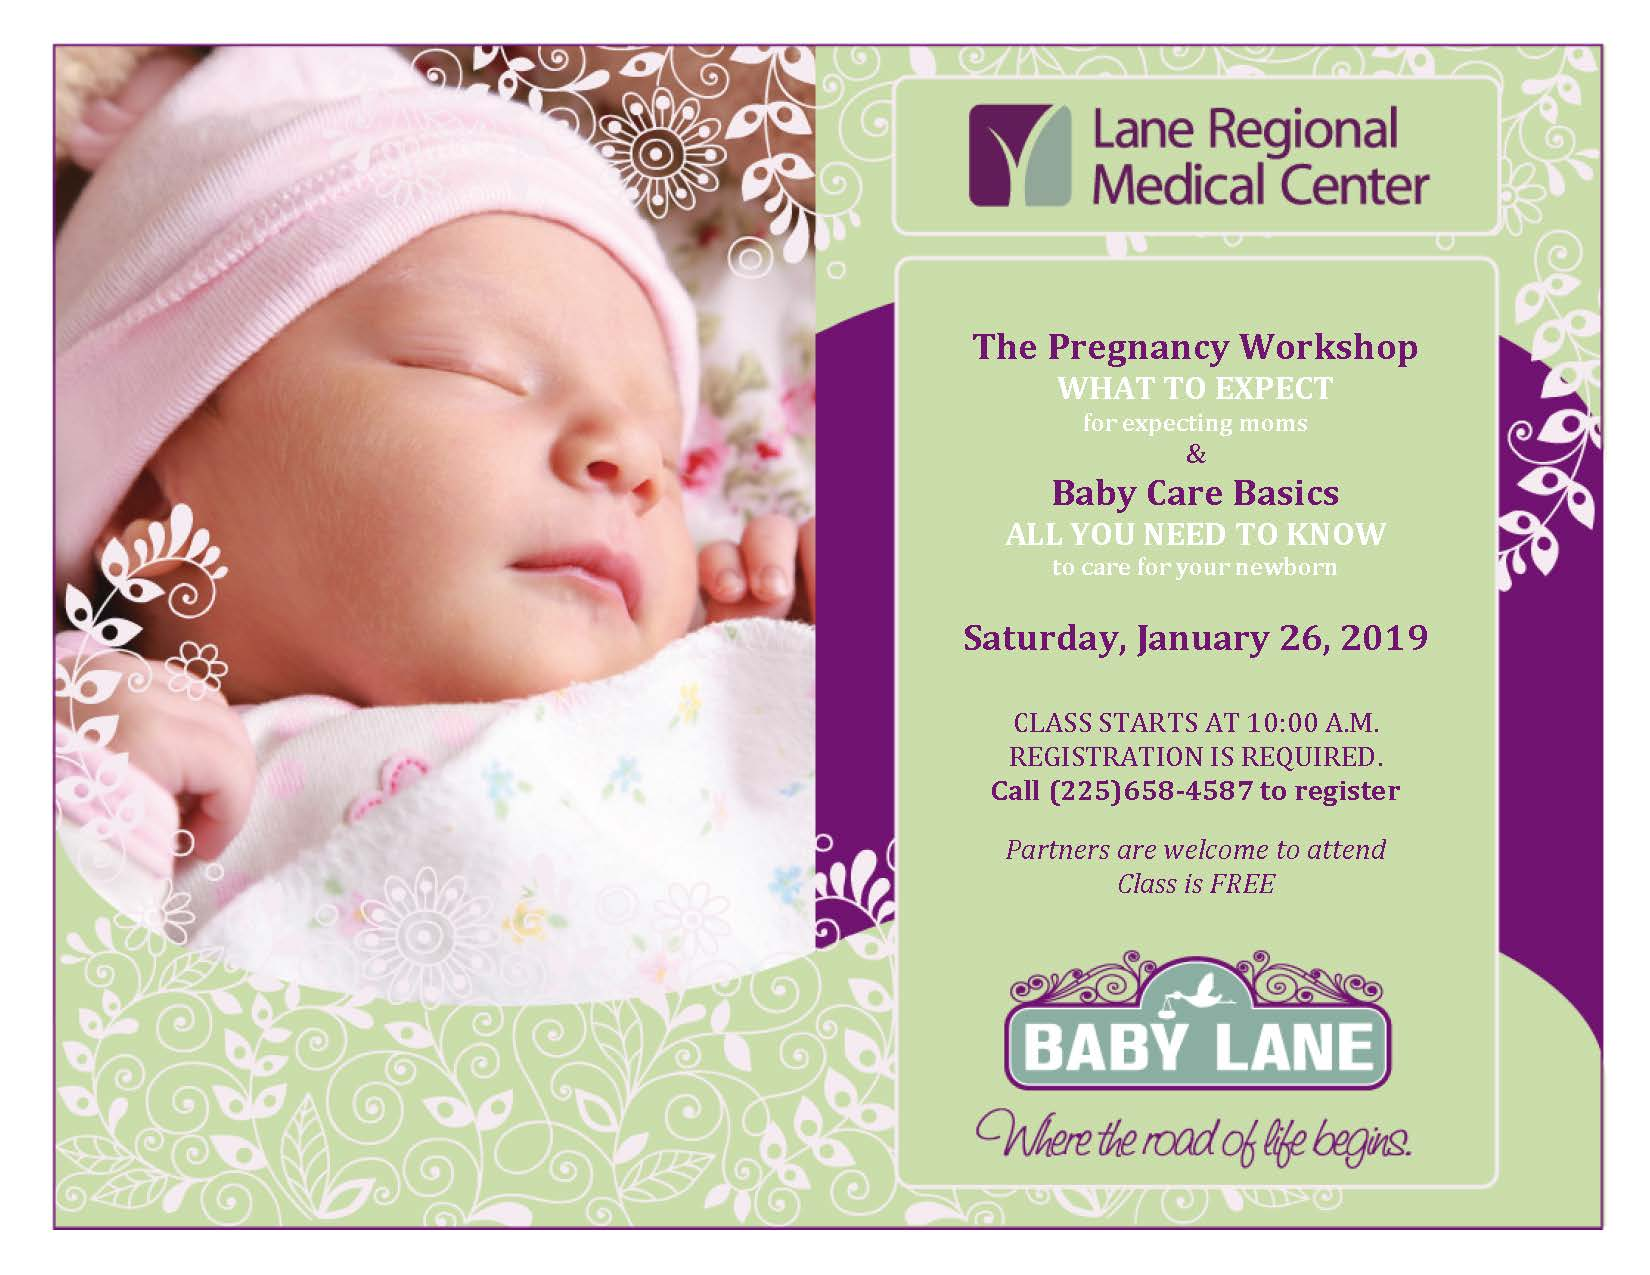 FREE Prenatal & Newborn Baby Care Class at Lane Regional Medical Center